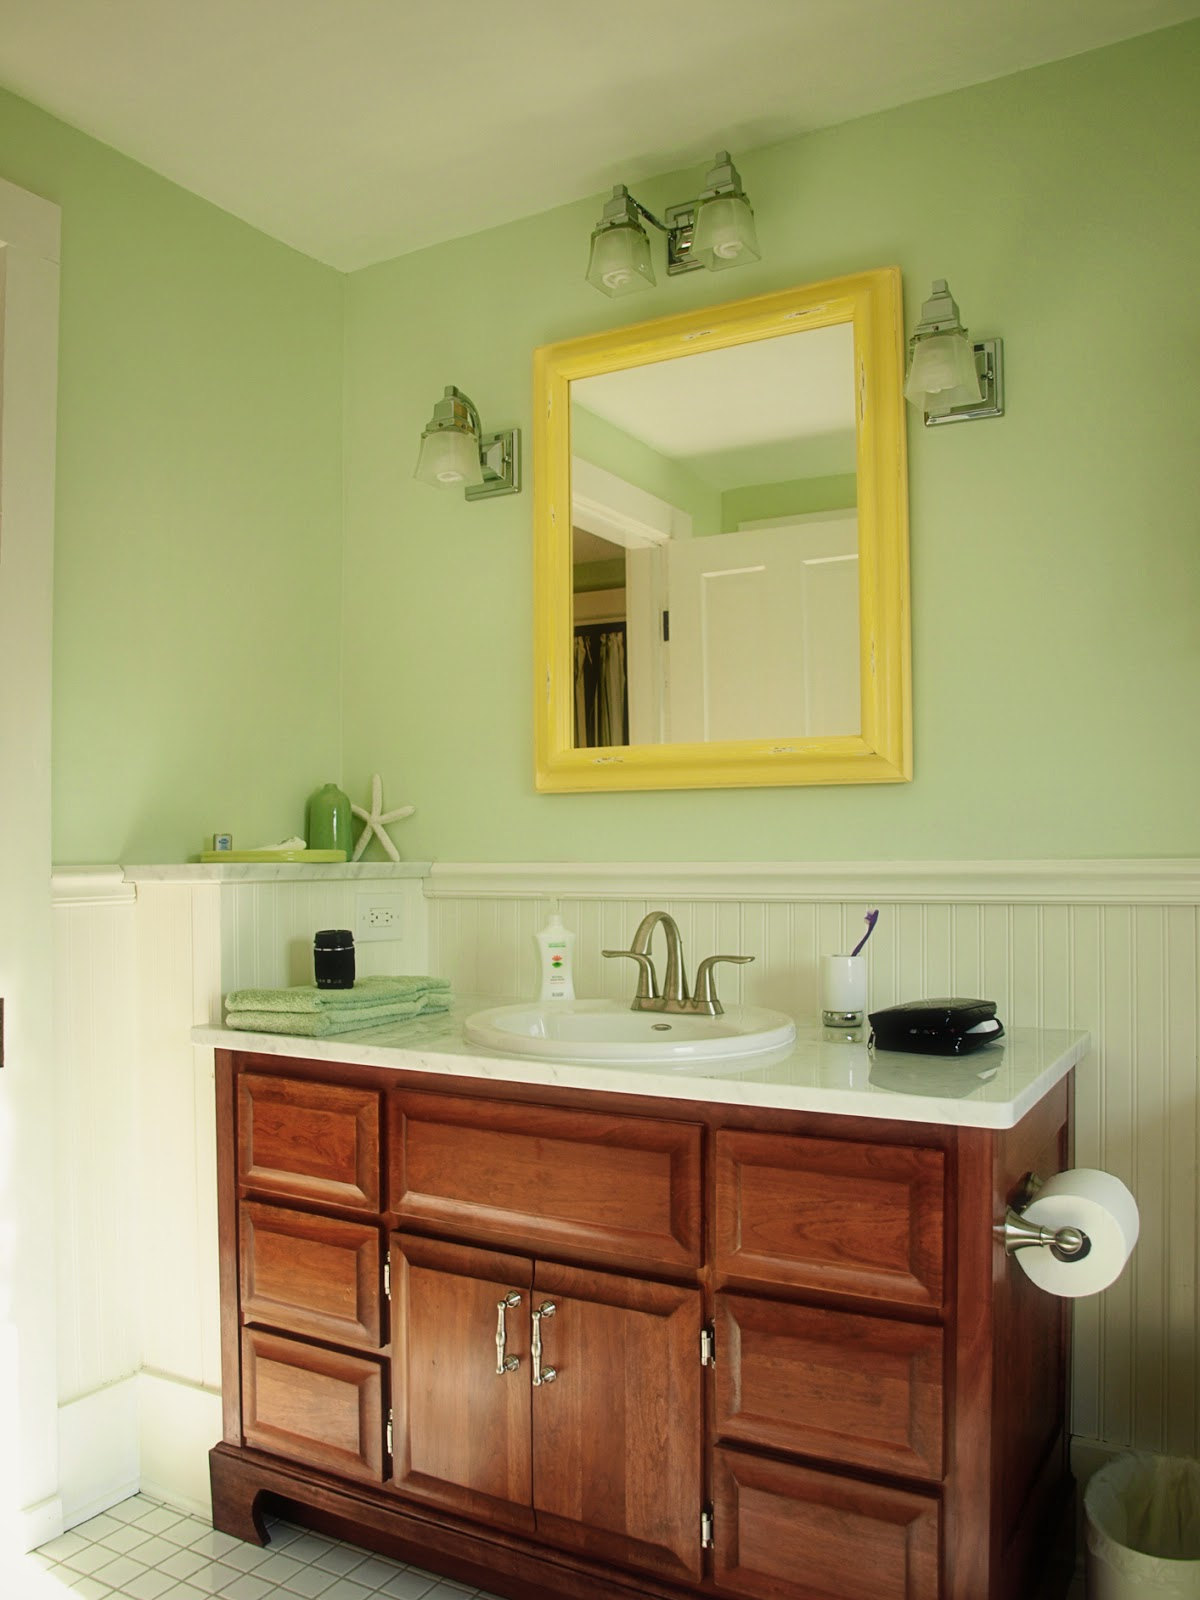 Farmhouse bathroom ideas bathroom designs for Bathroom designs org